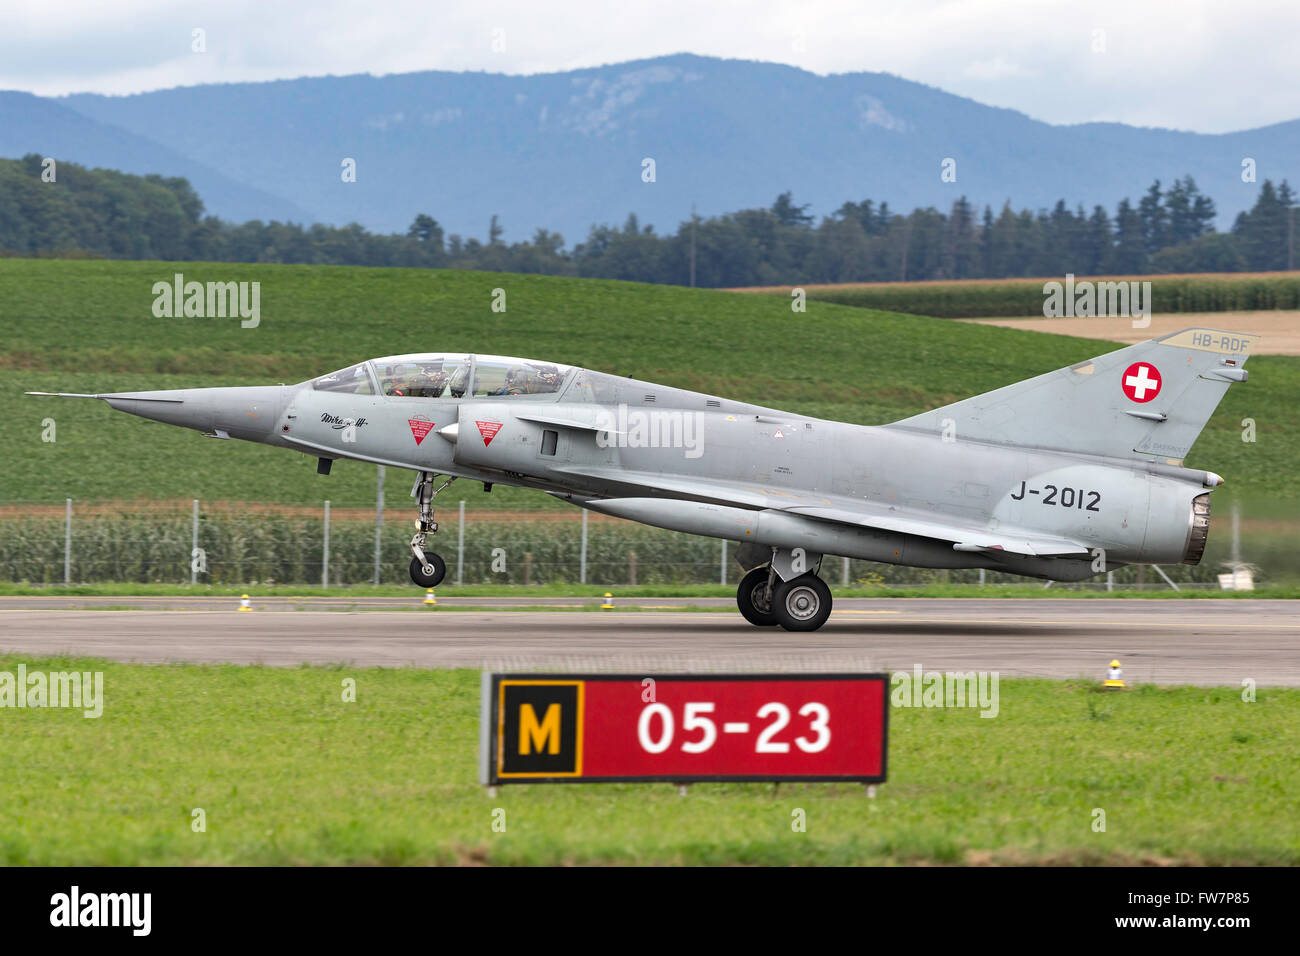 Dassault Mirage III DS fighter aircraft in Swiss Air Force markings (J-2012), the aircraft carries the civil registration Stock Photo